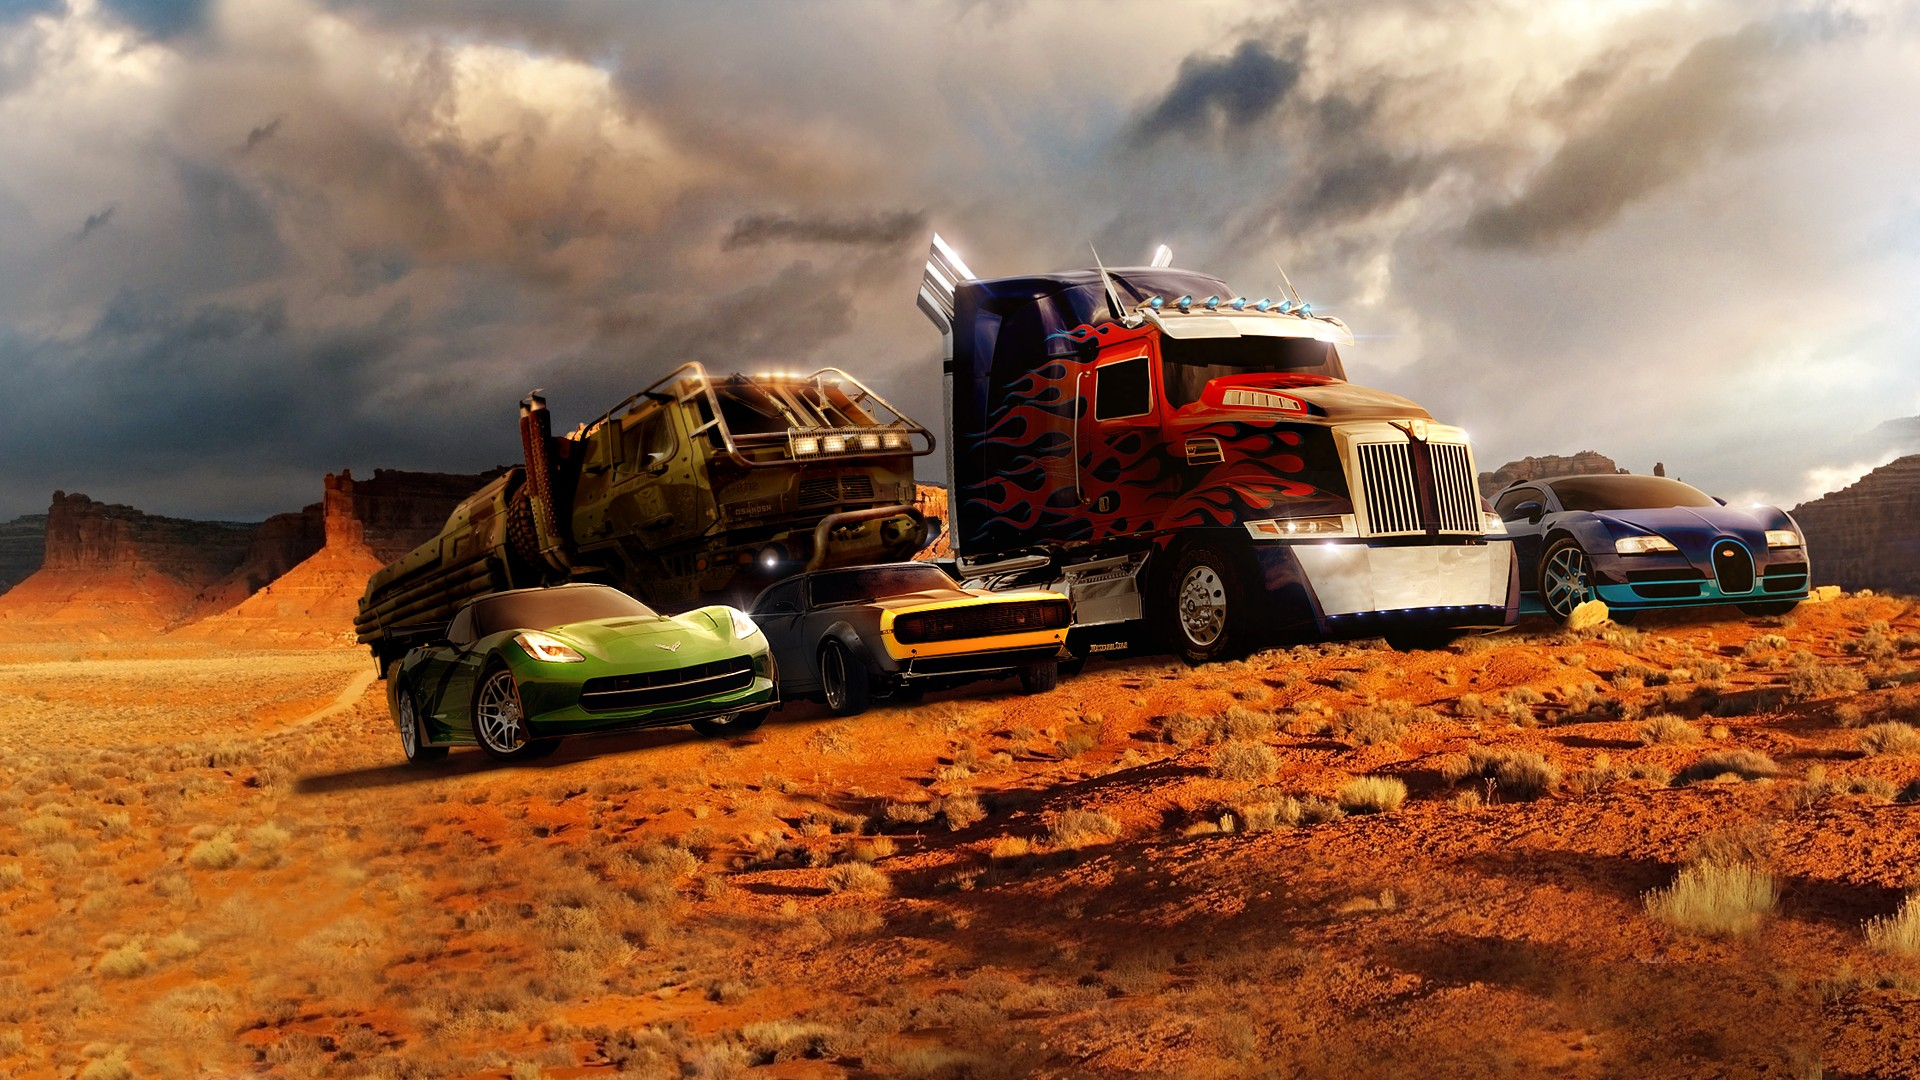 Optimus Prime, Bumblebee, Hound, Drift, and Slingshot